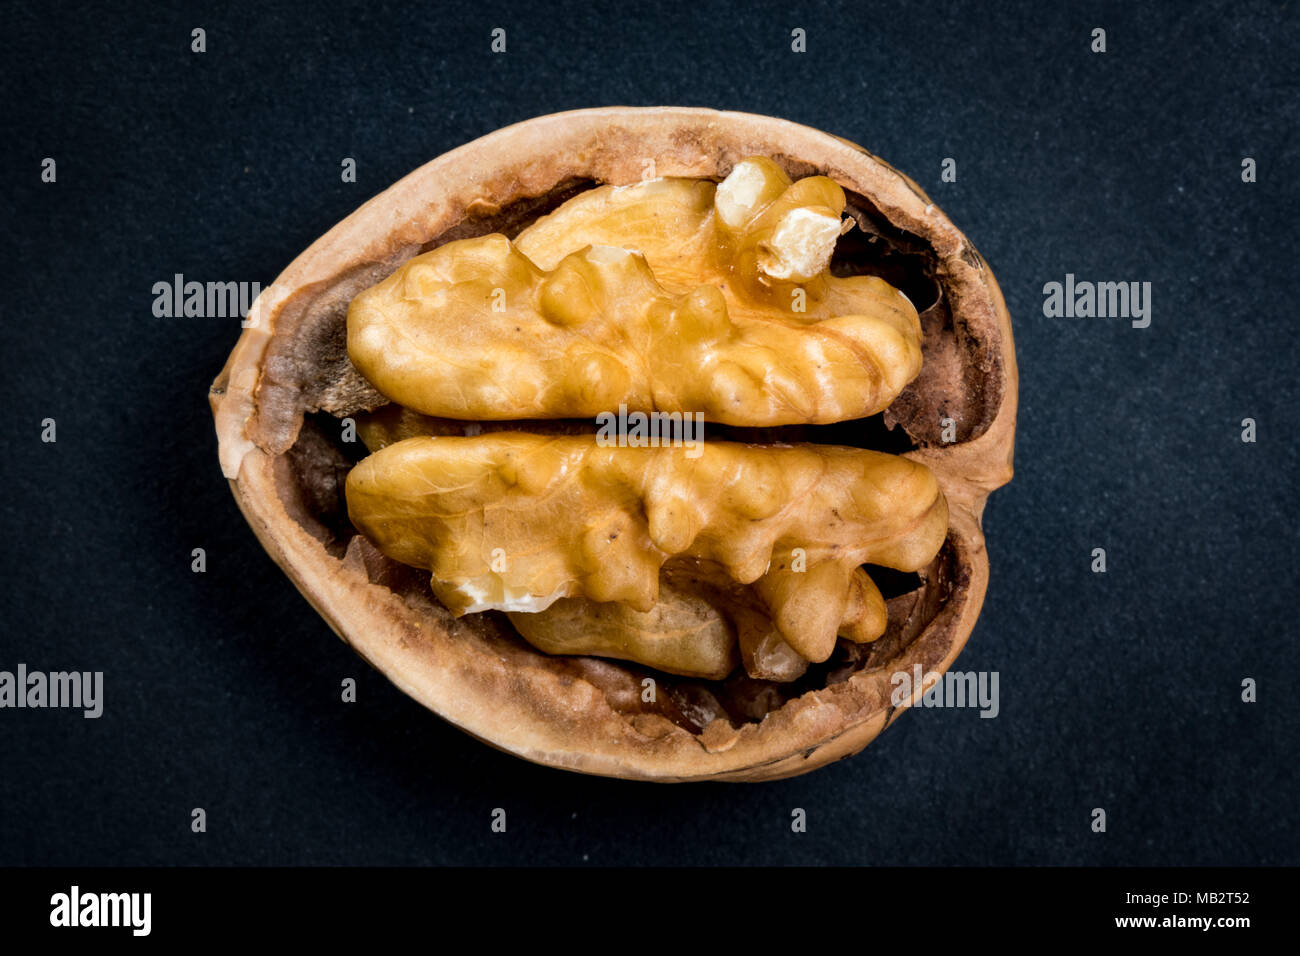 Walnut and Half Shell highlighted against dark background - Stock Image